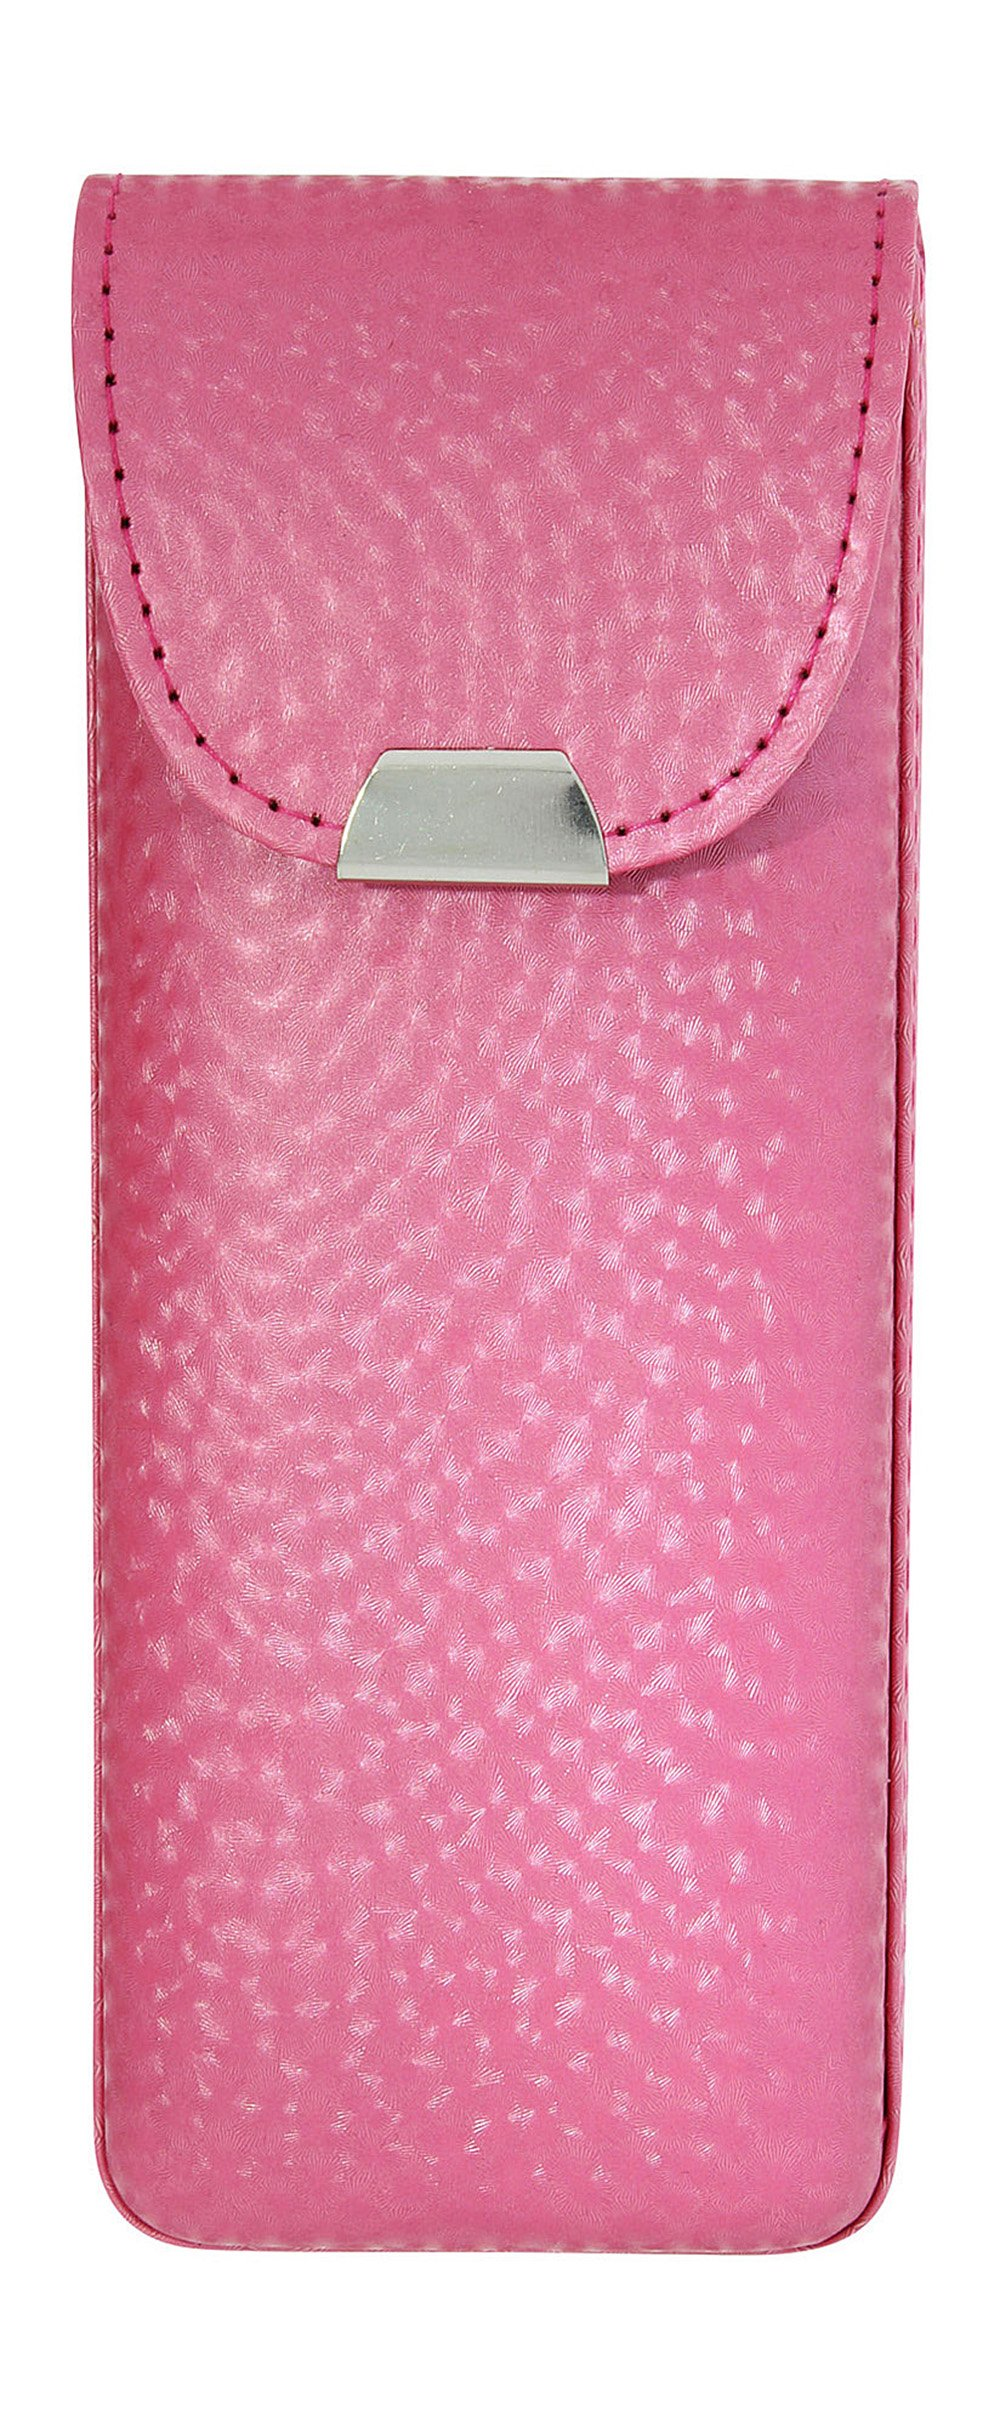 Eyeglass Case Top Snap Closure Metal Embellishment Pearly Shade Of Pink